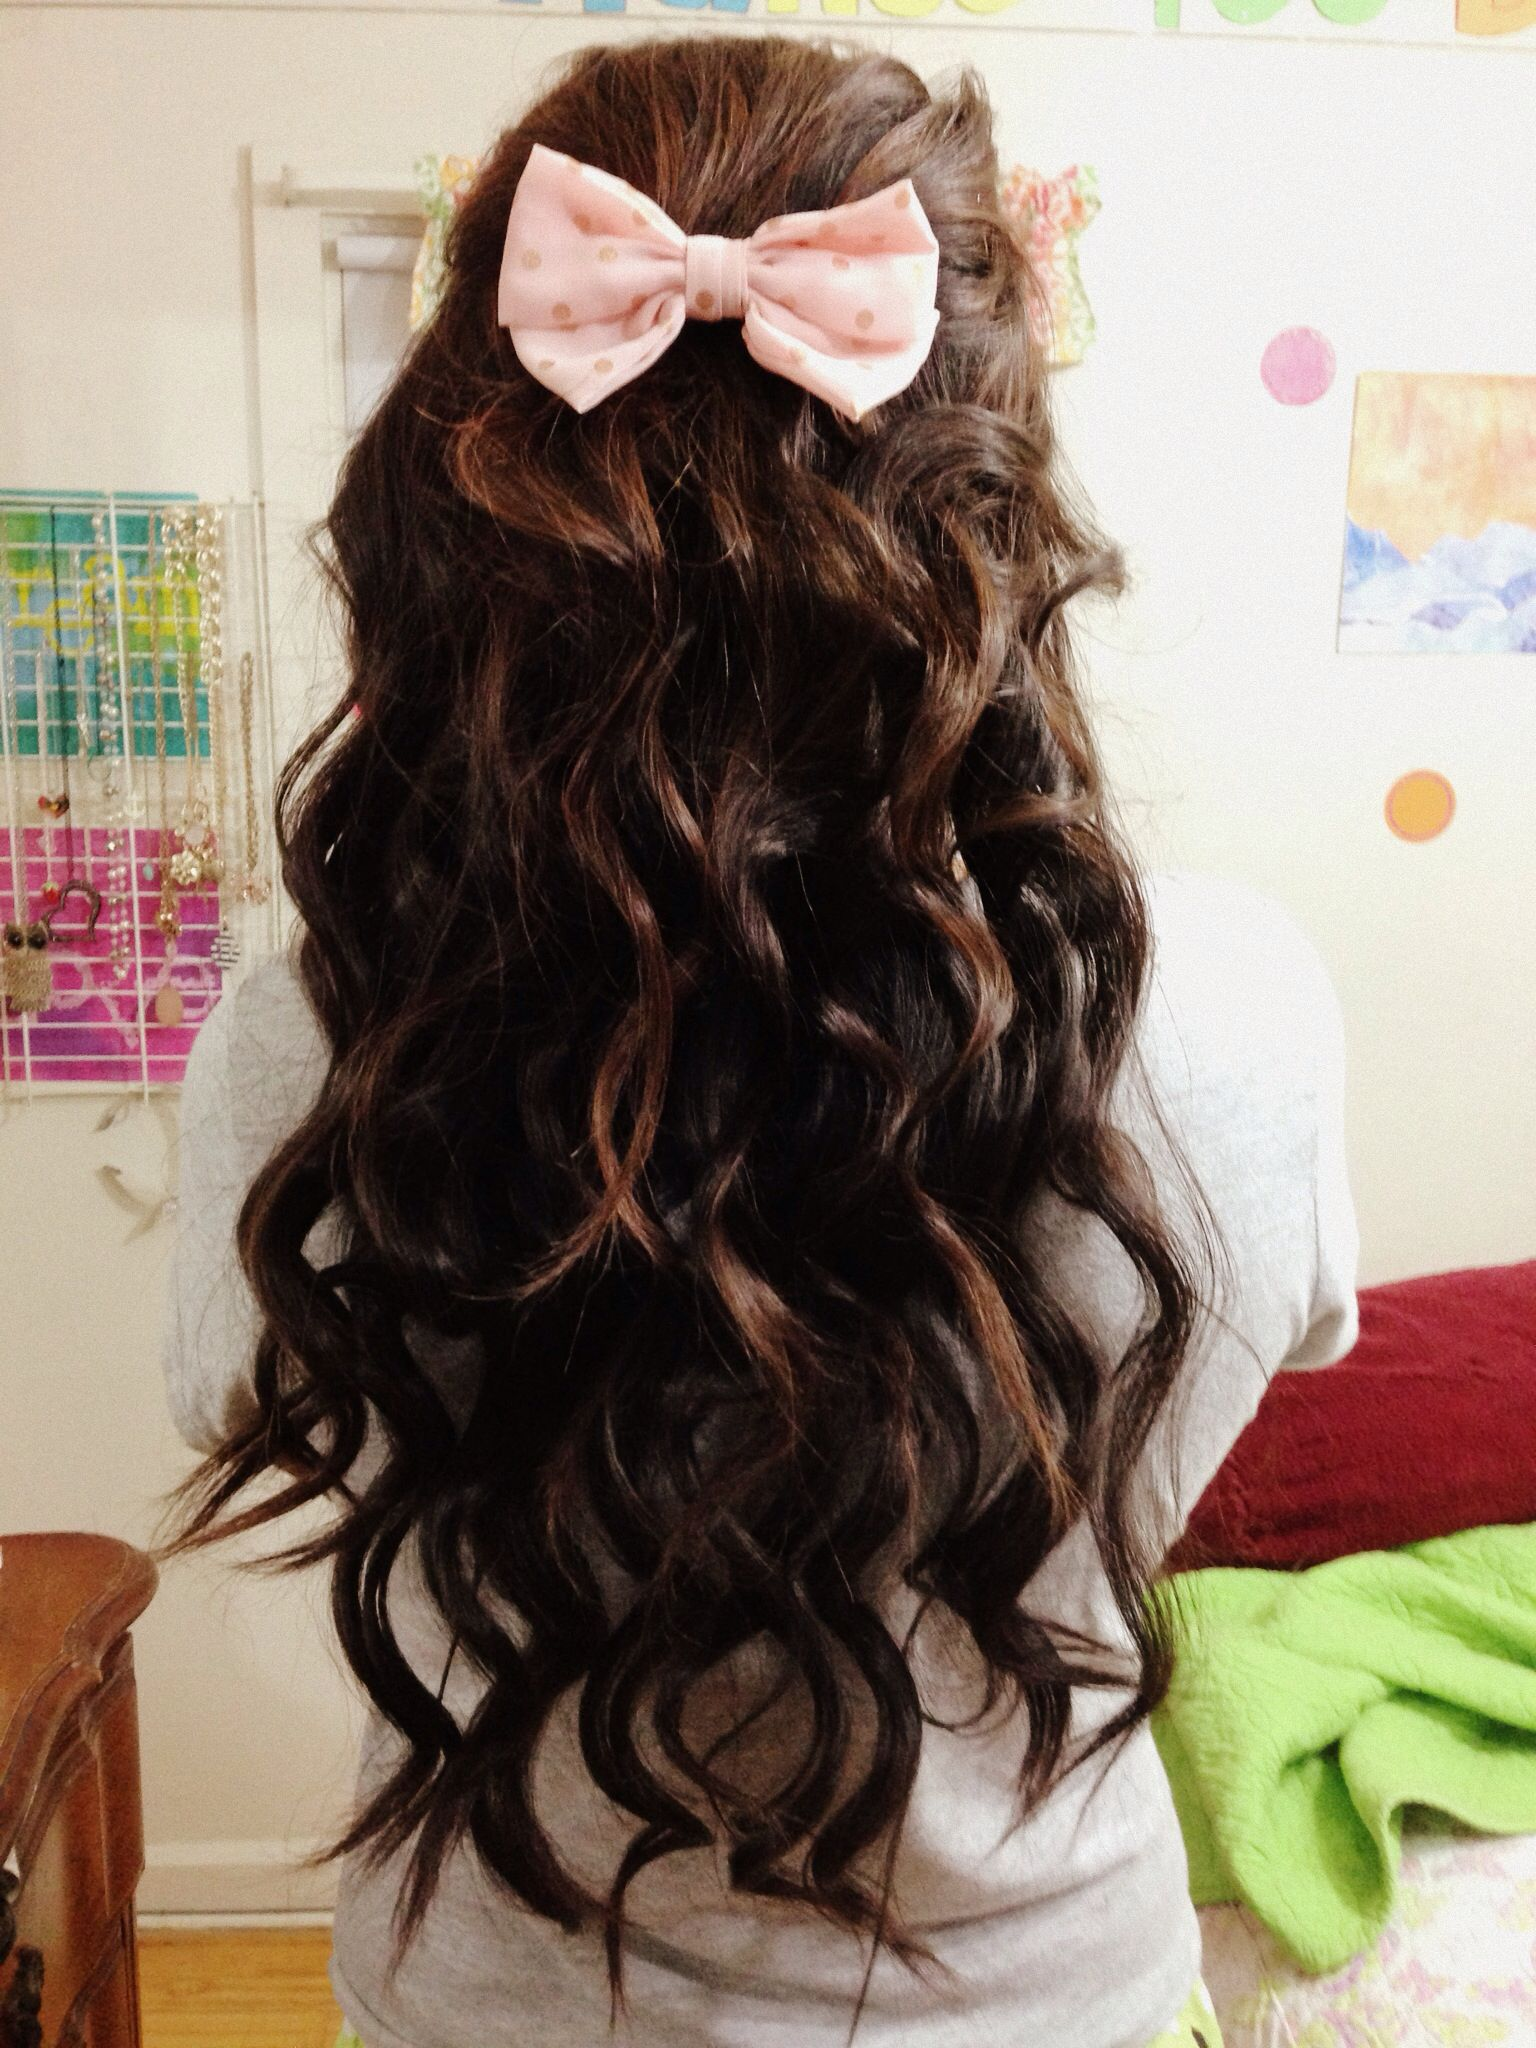 Hairstyles Curly Hair Bow Bows Long Darkbrown Brown